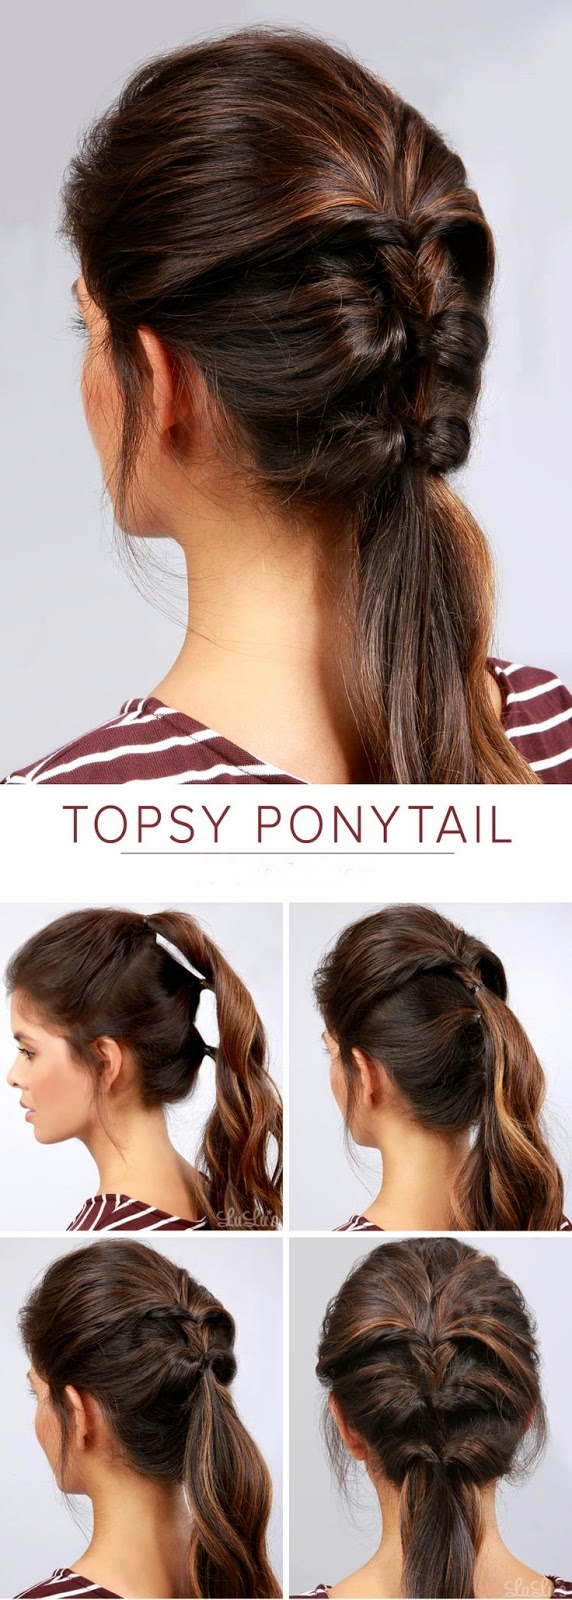 Hairstyles And Women Attire Summer Hair Styles Funky Ponytail